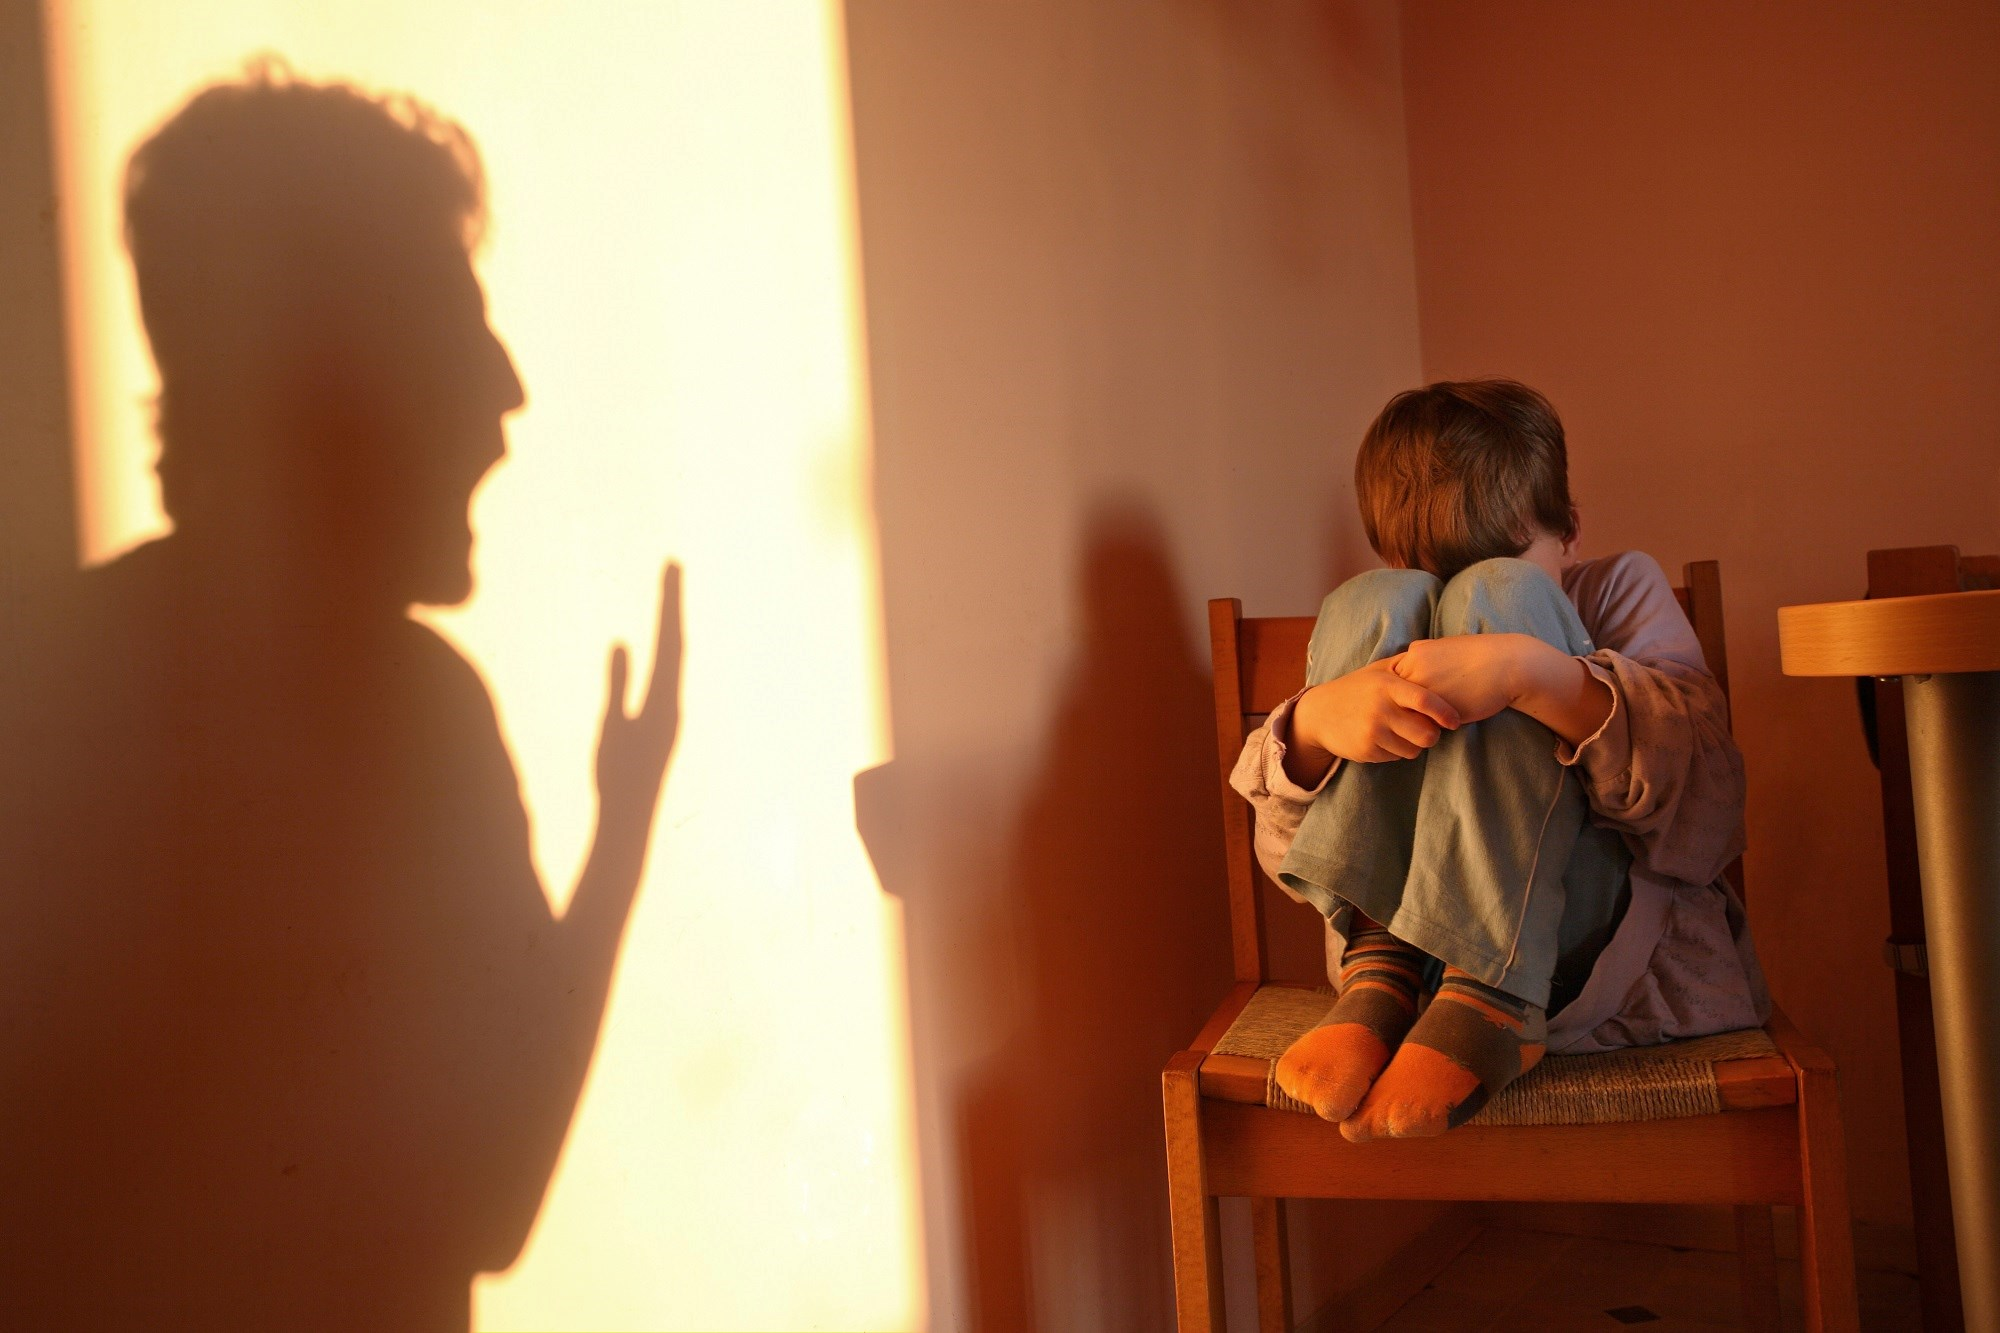 Childhood Abuse Linked to Compromised White Matter Integrity in Bipolar Disorder